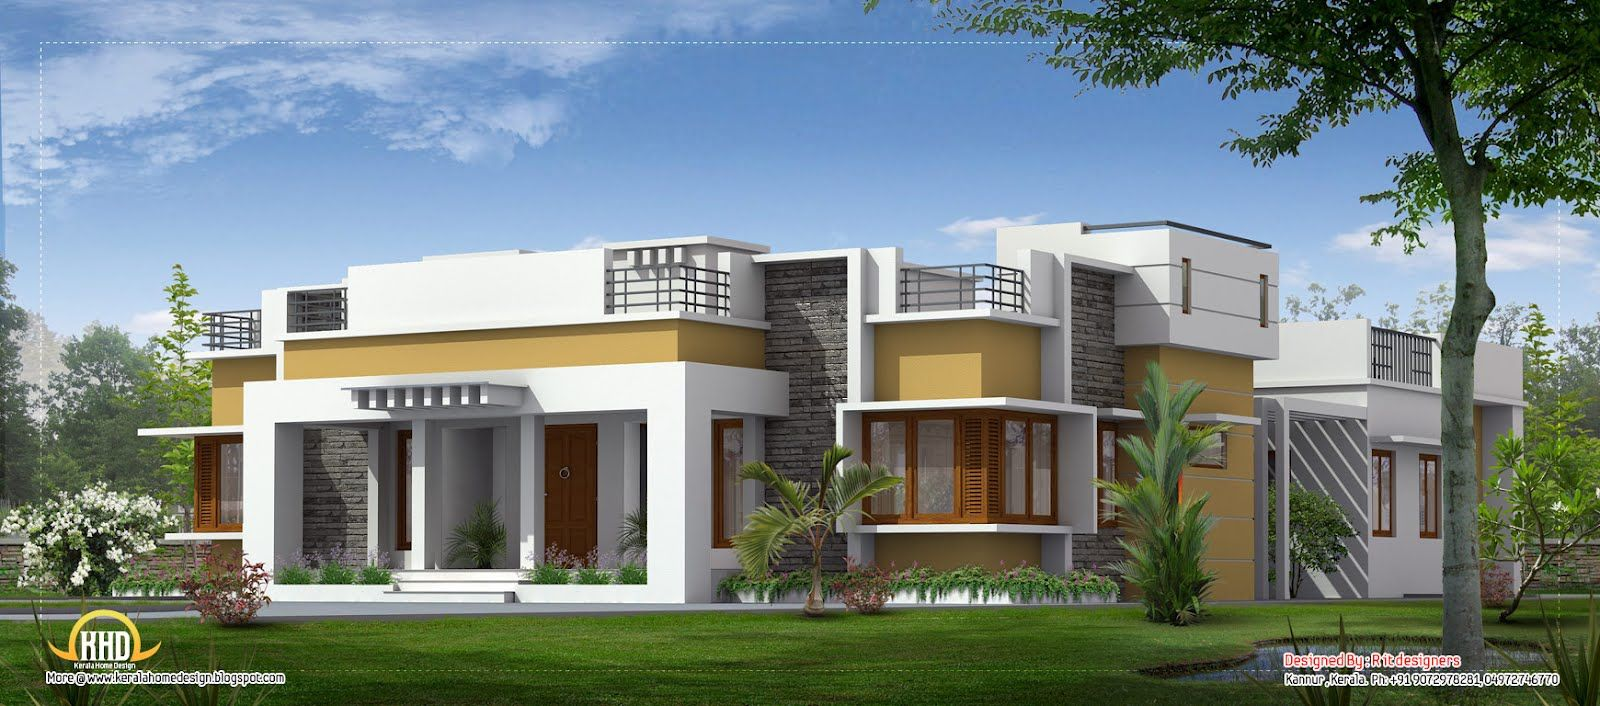 Single level designer home single floor house plans for Kerala style single storey house plans